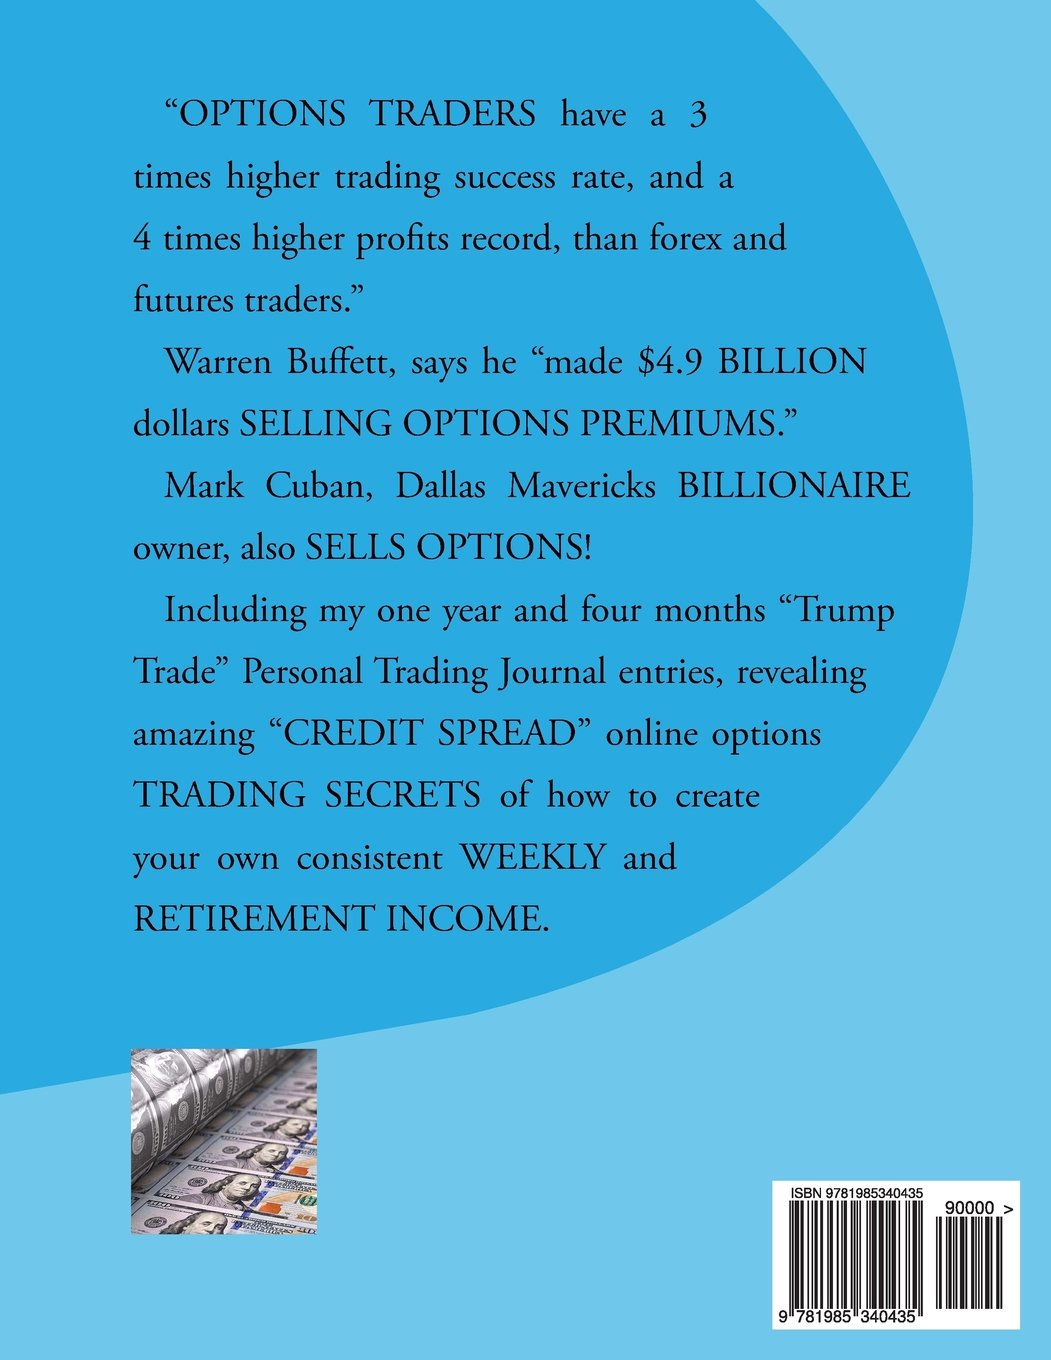 Credit Spread Online Options Trading Weekly Income SECRETS!: The Amazing And True Secrets Of How To Create A Weekly Income Trading Online Credit Spread Options! by CreateSpace Independent Publishing Platform